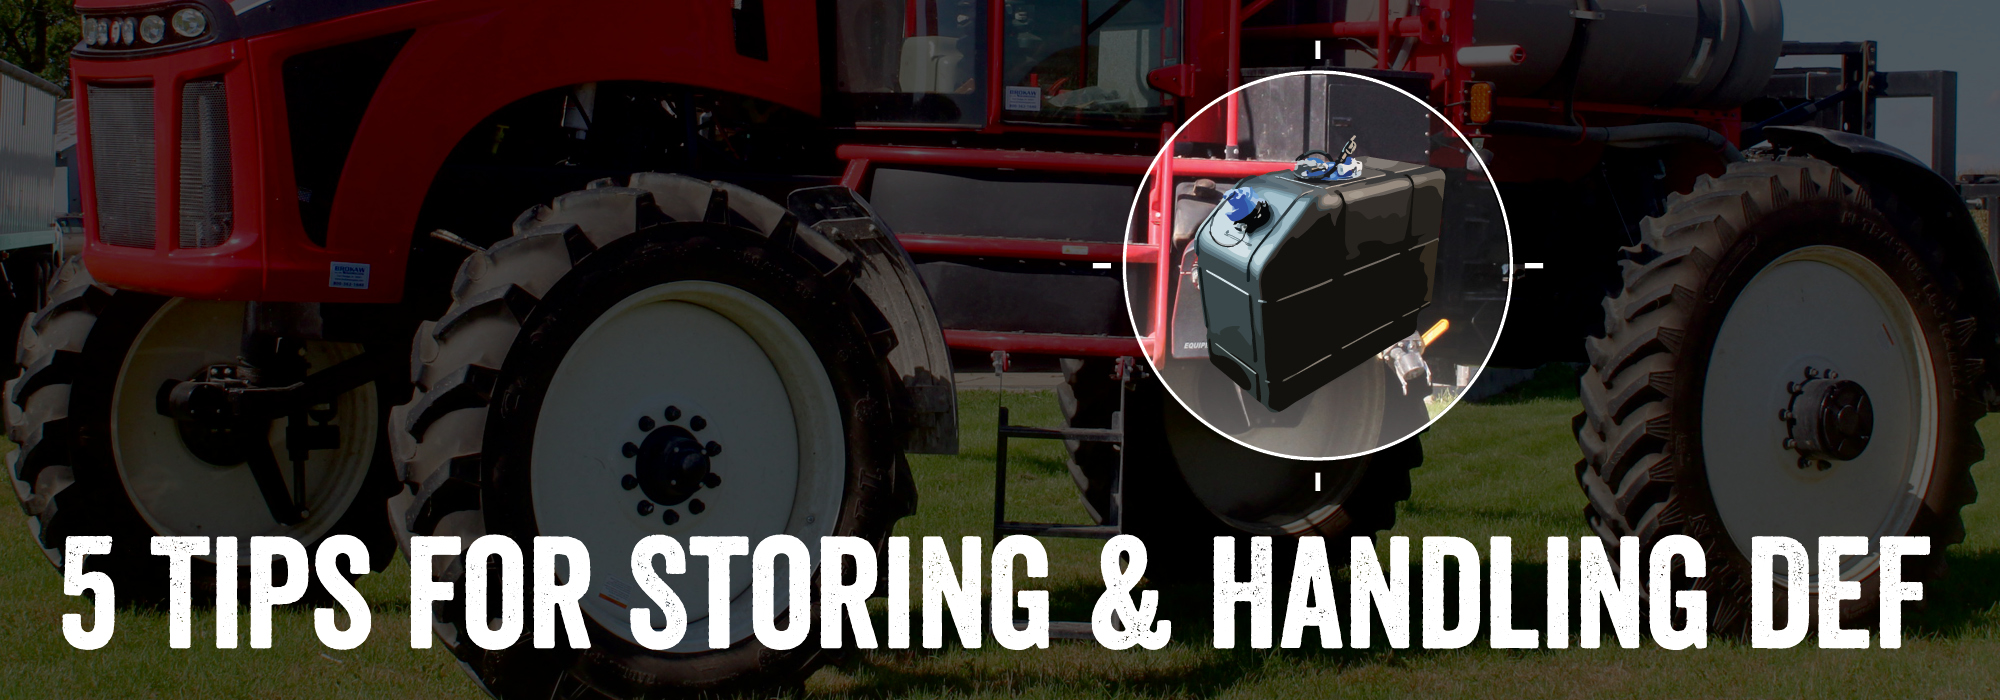 5 Tips for Storing & Handling DEF | Apache Sprayers - Self